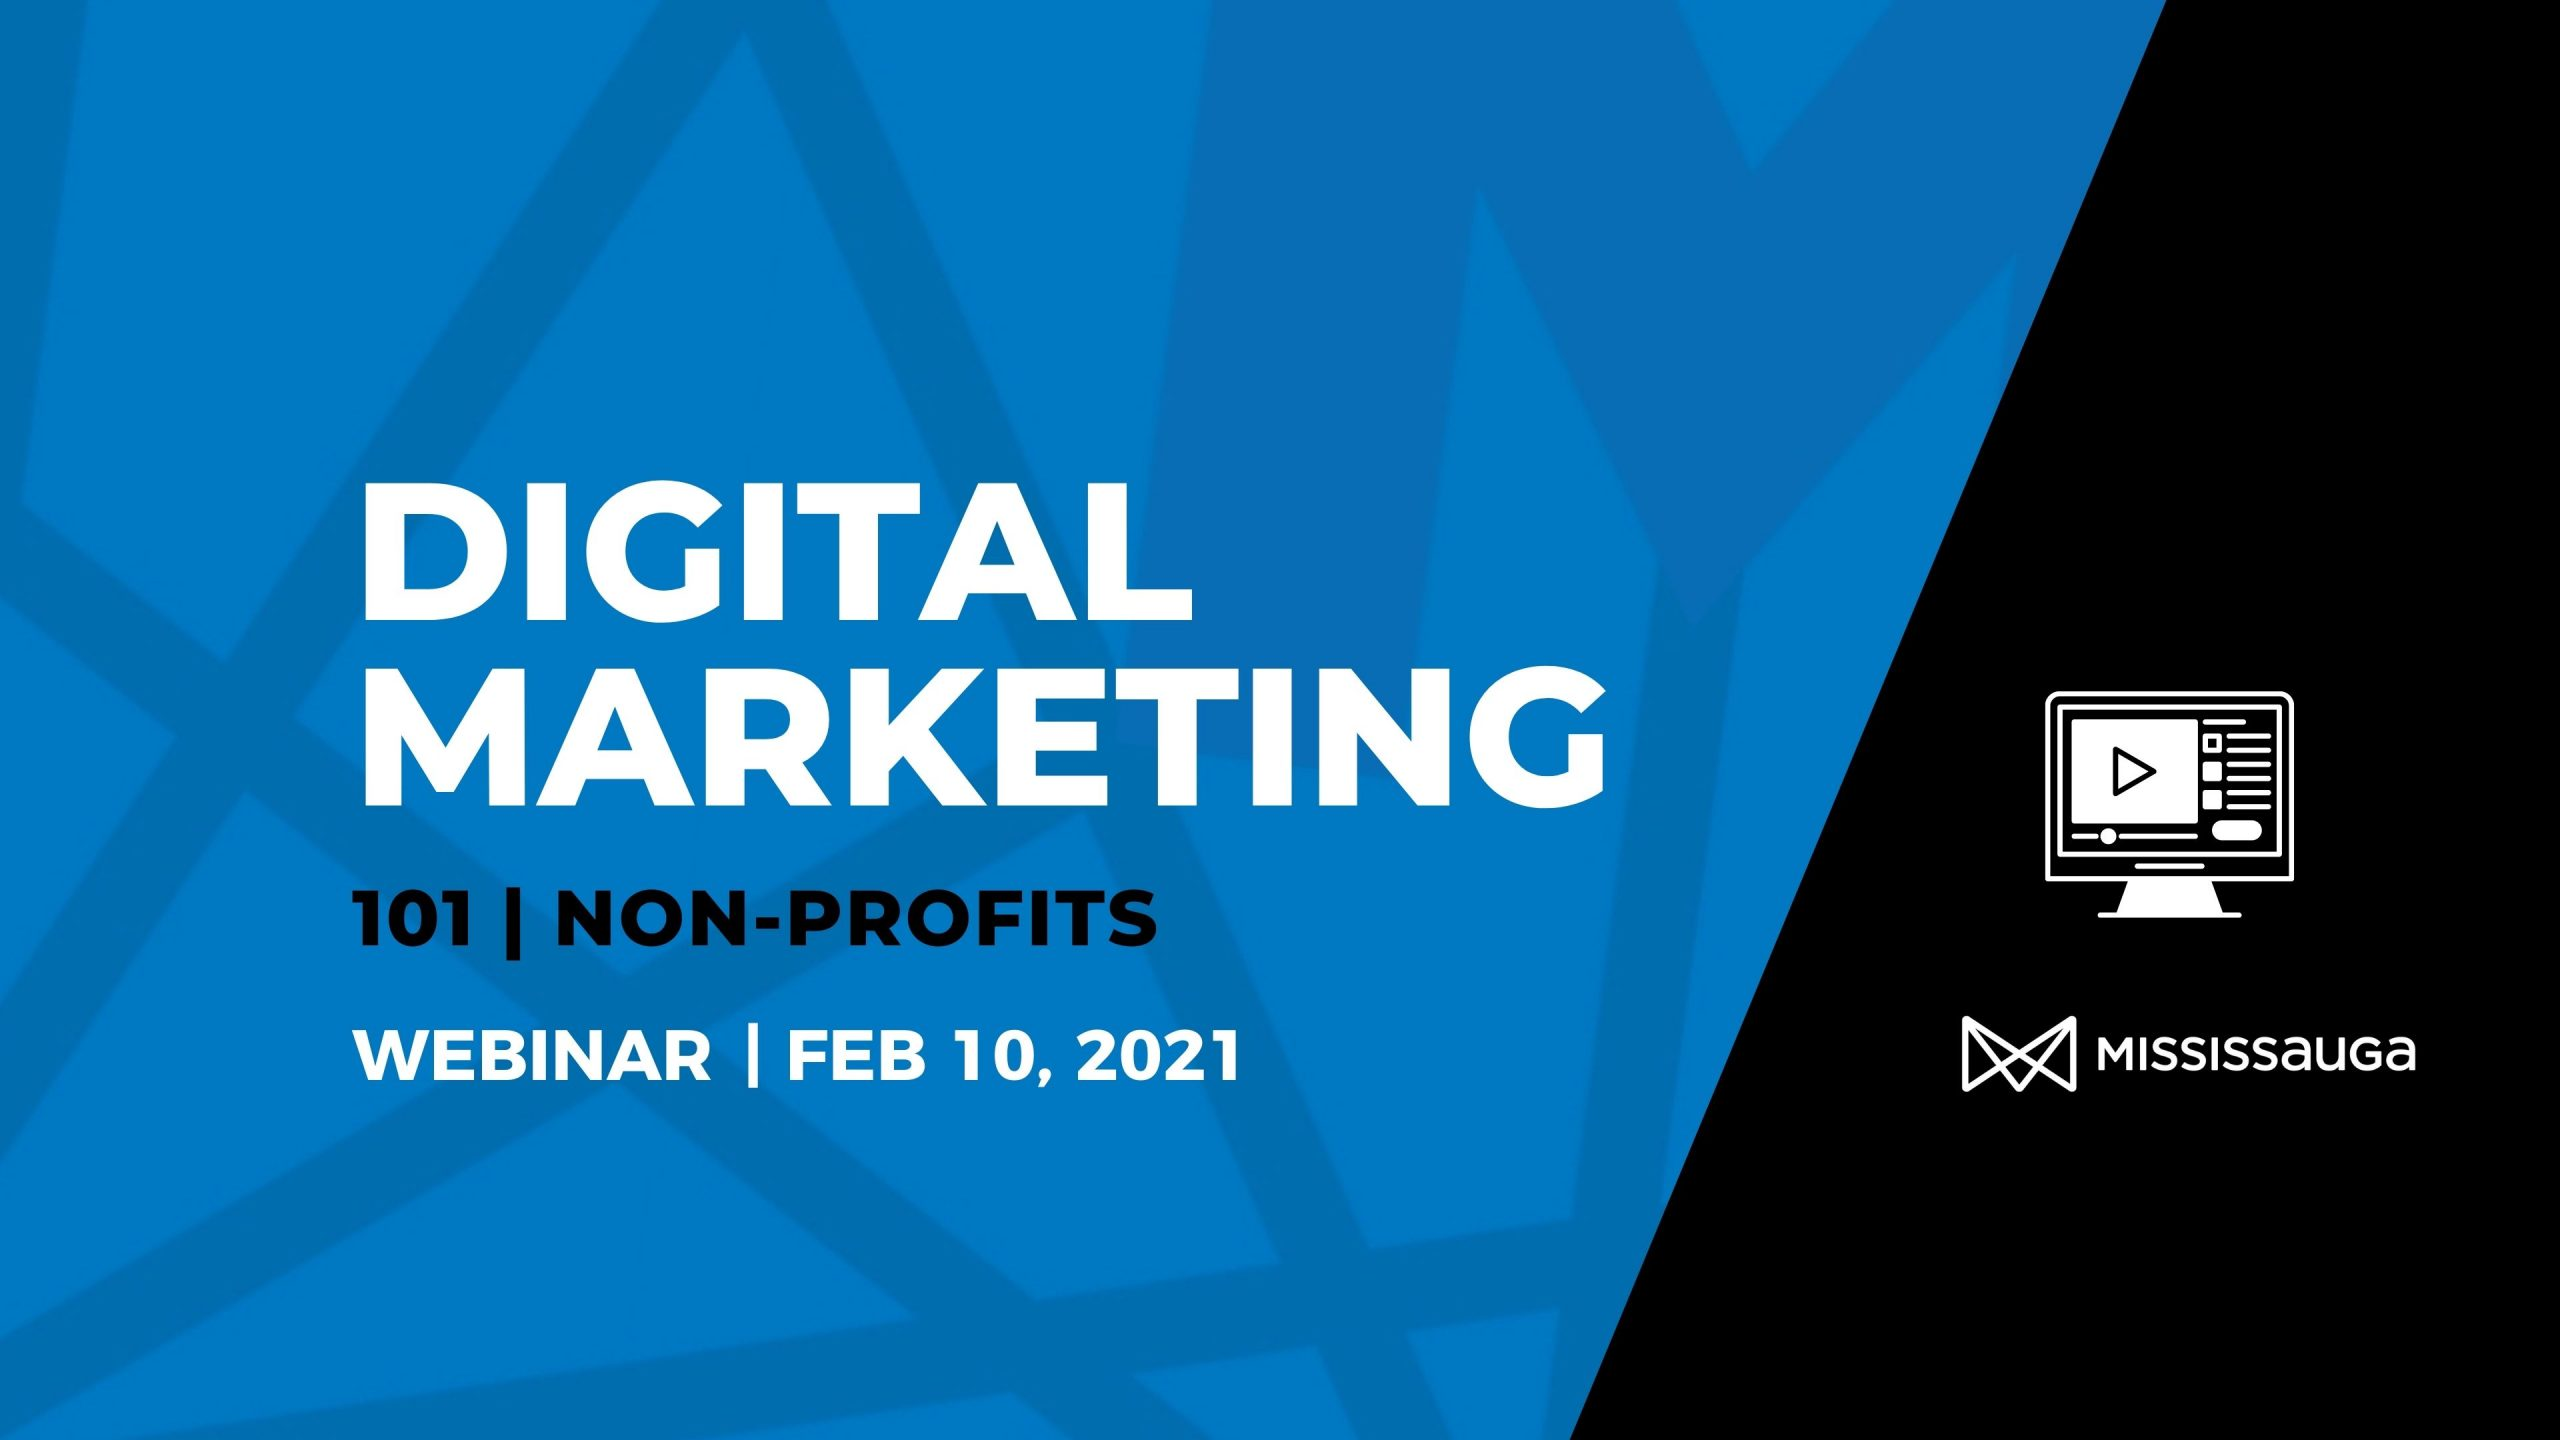 Digital Marketing 101 for Non-Profits – Webinar, Feb 10